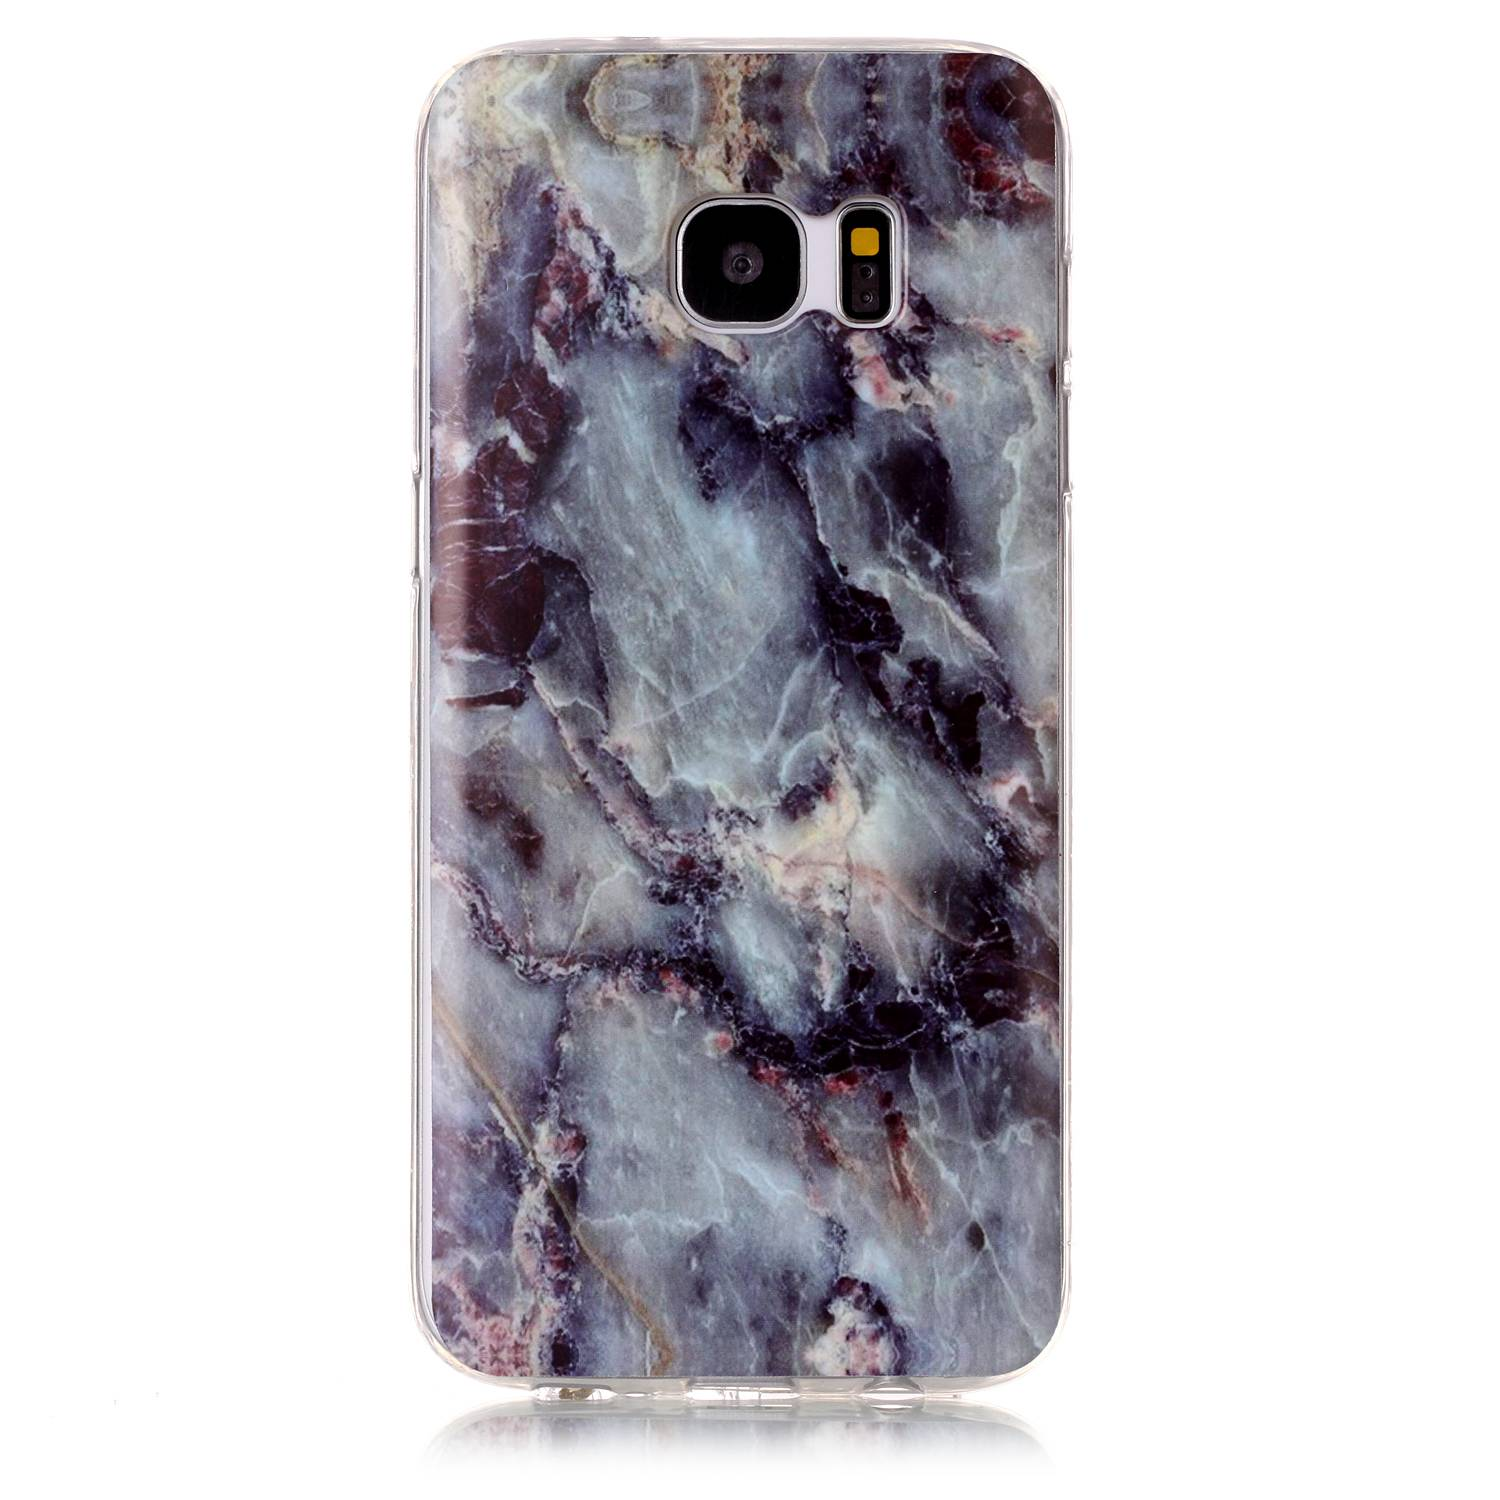 Fashion Personalized Marble Phone Case Soft TPU Back Cover Coque for Samsung Galaxy S7 / S7 Edge Case Accessories